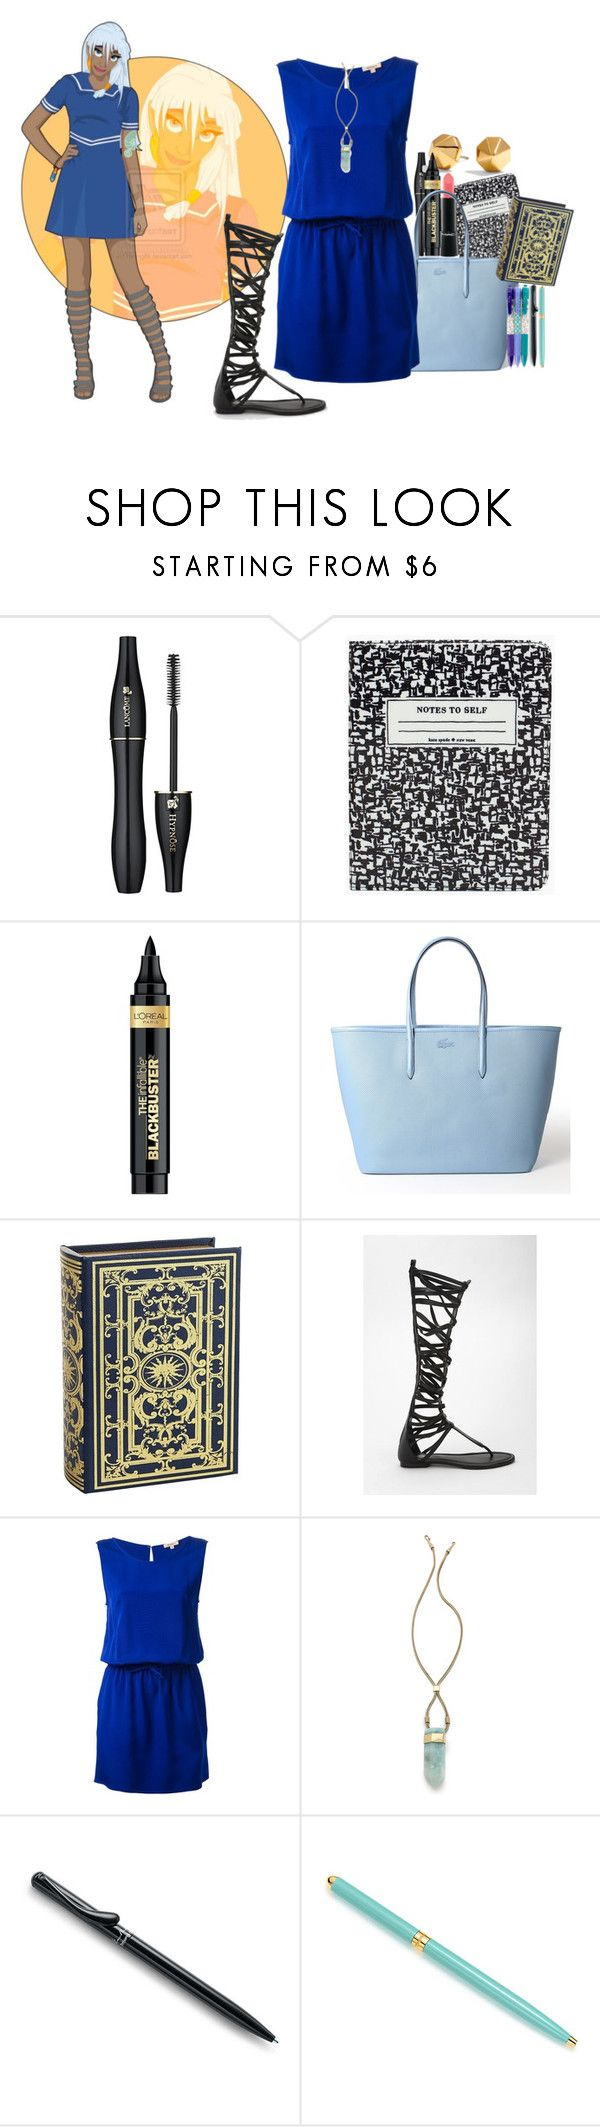 """As a modern day - Kida [Atlandide - The Lost Empire]"" by alexxhutcherson ❤ liked on Polyvore featuring Lancôme, Disney, Kate Spade, Rebecca Minkoff, L'Oréal Paris, Lacoste, Pier 1 Imports, All Black, P.A.R.O.S.H. and MANIAMANIA"